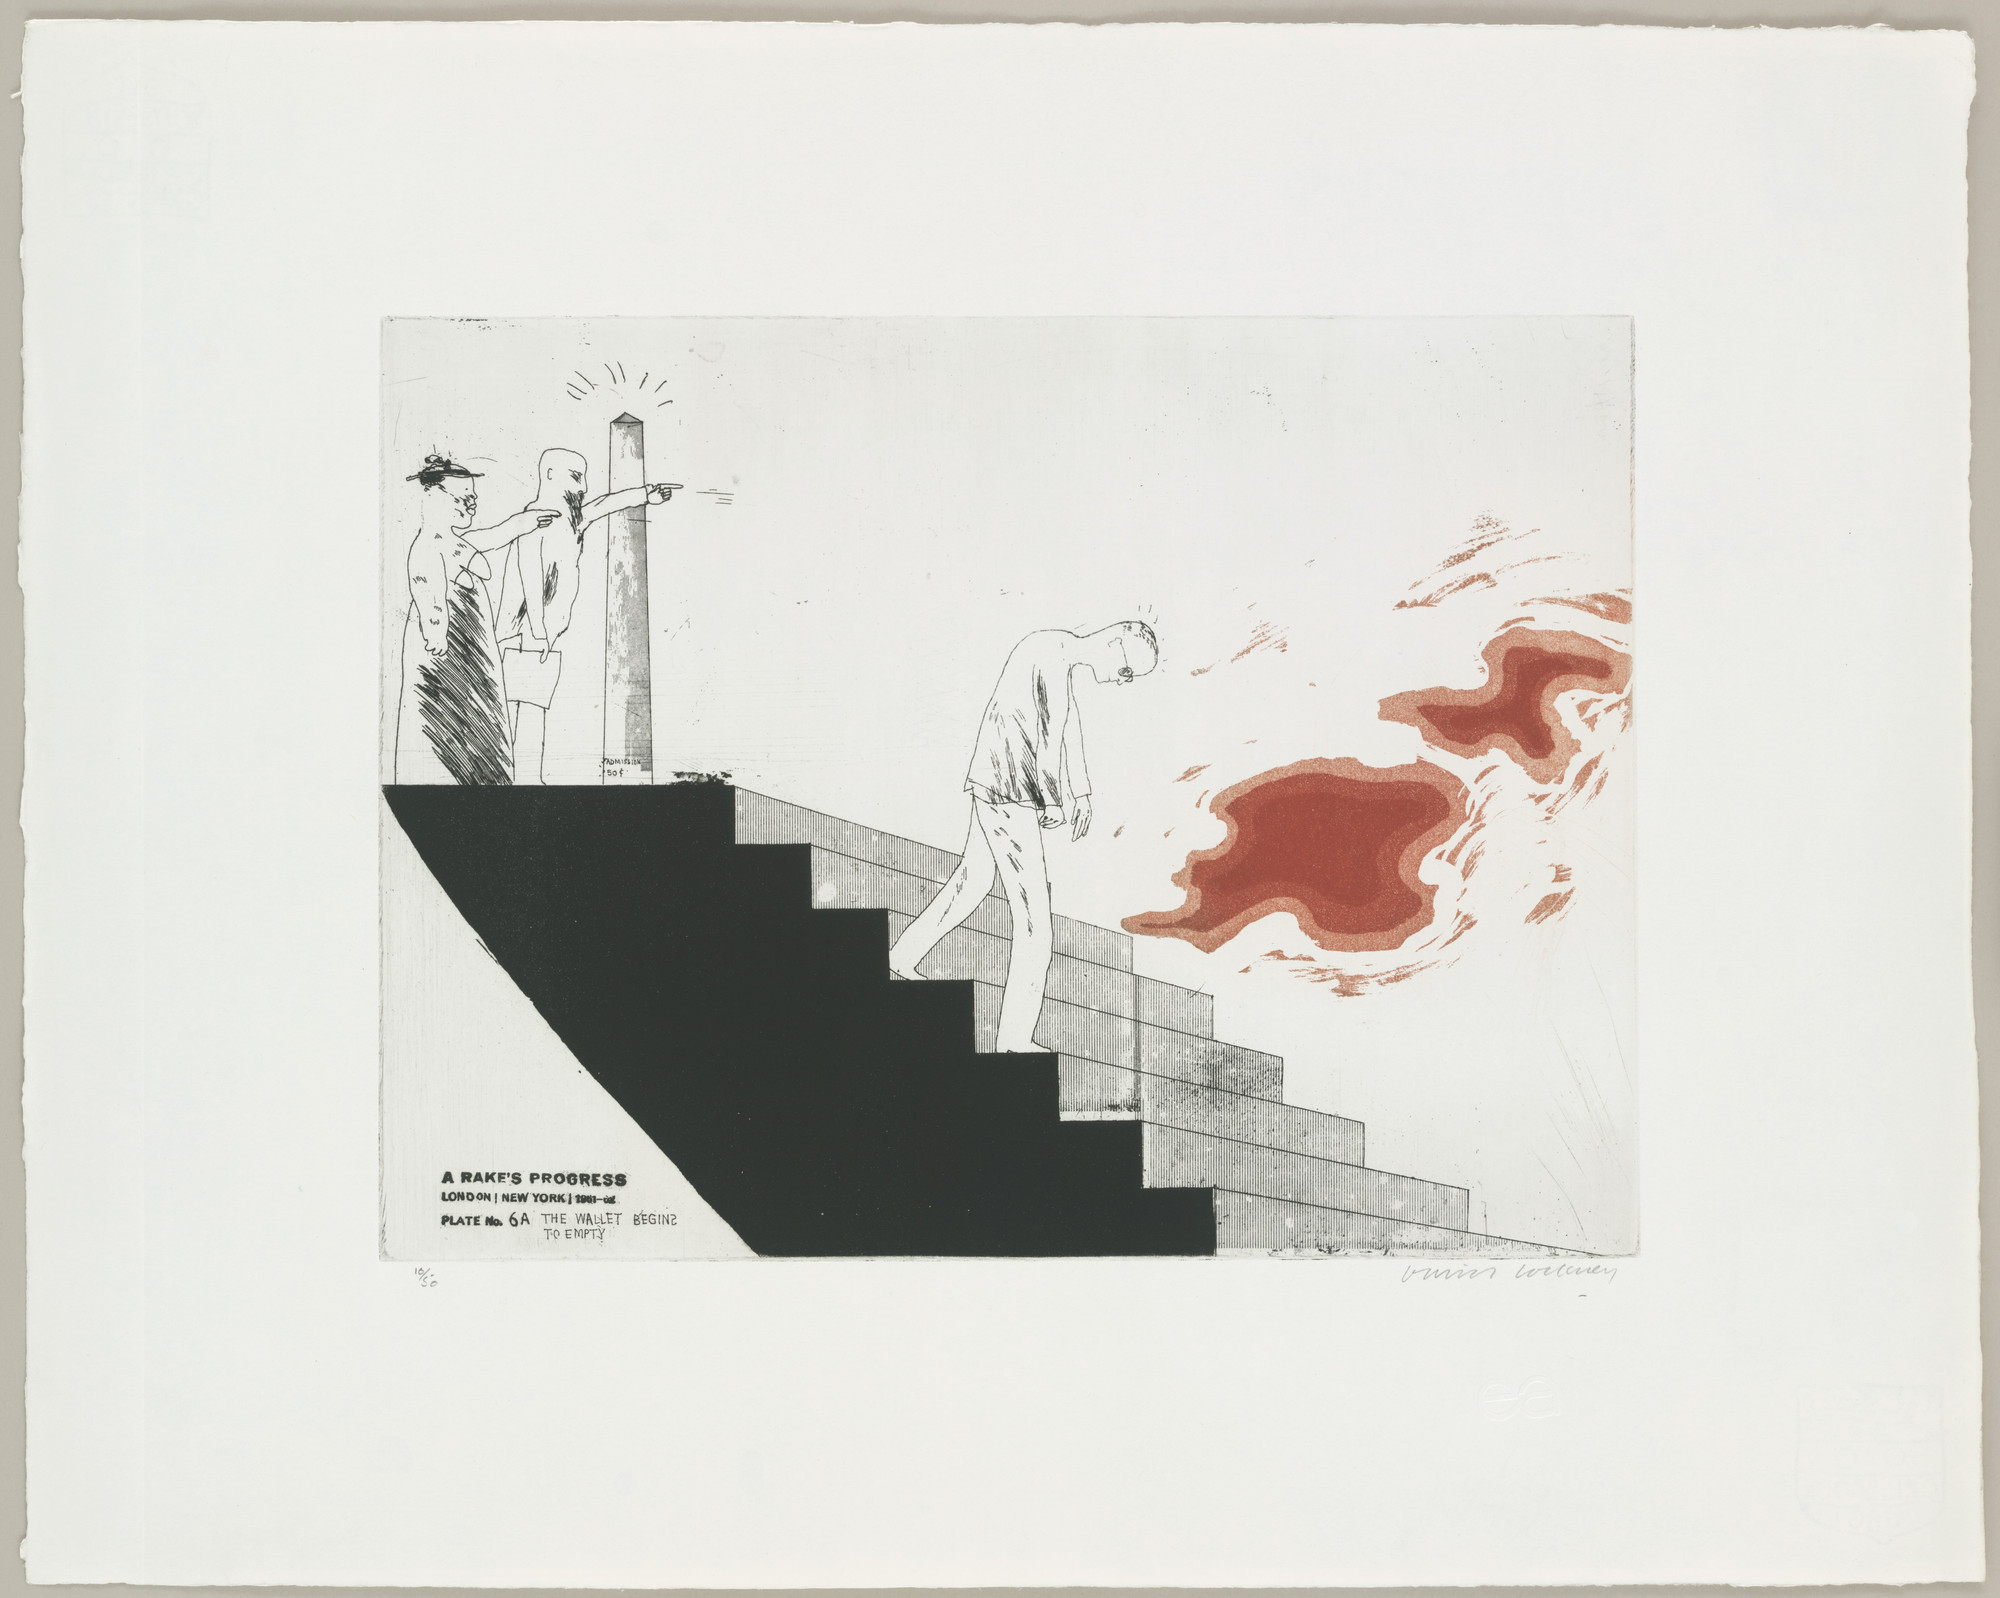 David Hockney. The Wallet Begins to Empty (plate 6a) from A Rake's Progress. 1961–62, published 1963